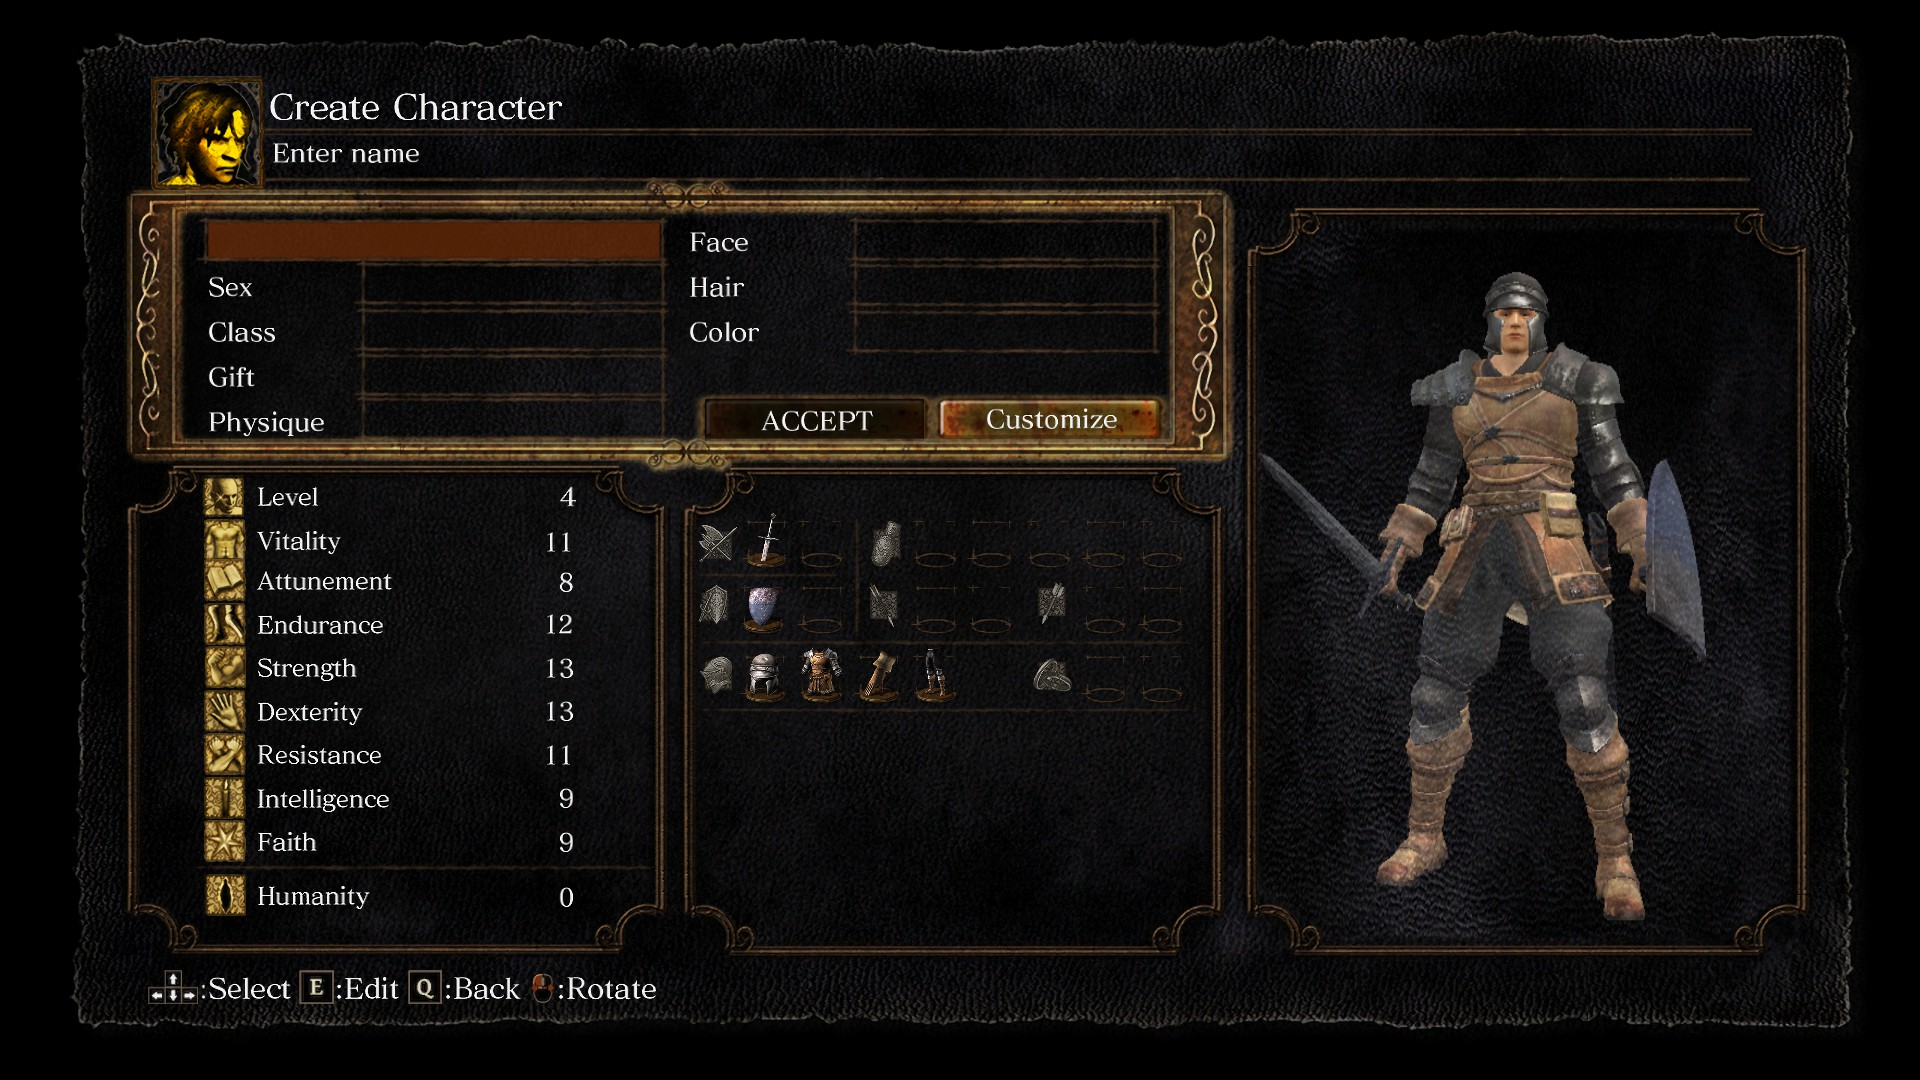 Dark Souls Remastered Guide   Tips  Tricks  Controls  Character     Firstly select your class  the options for which you can see just below  As  you scroll through the classes  you ll see that the attributes on the left